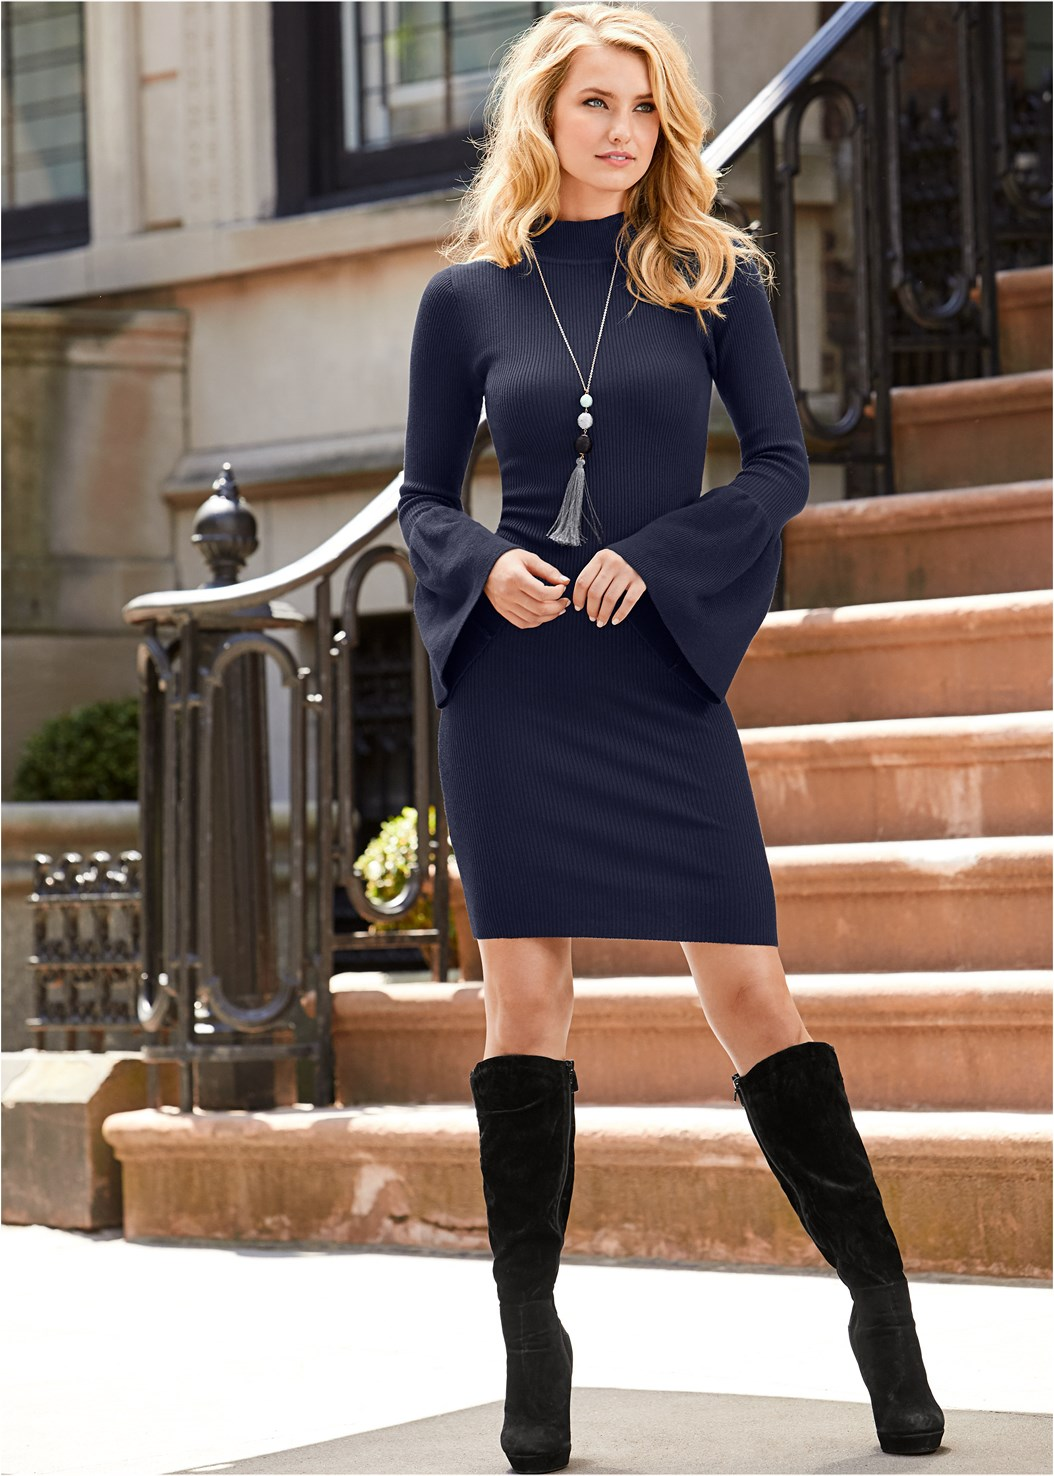 Sleeve Detail Sweater Dress,Slouchy Mid-Calf Boot